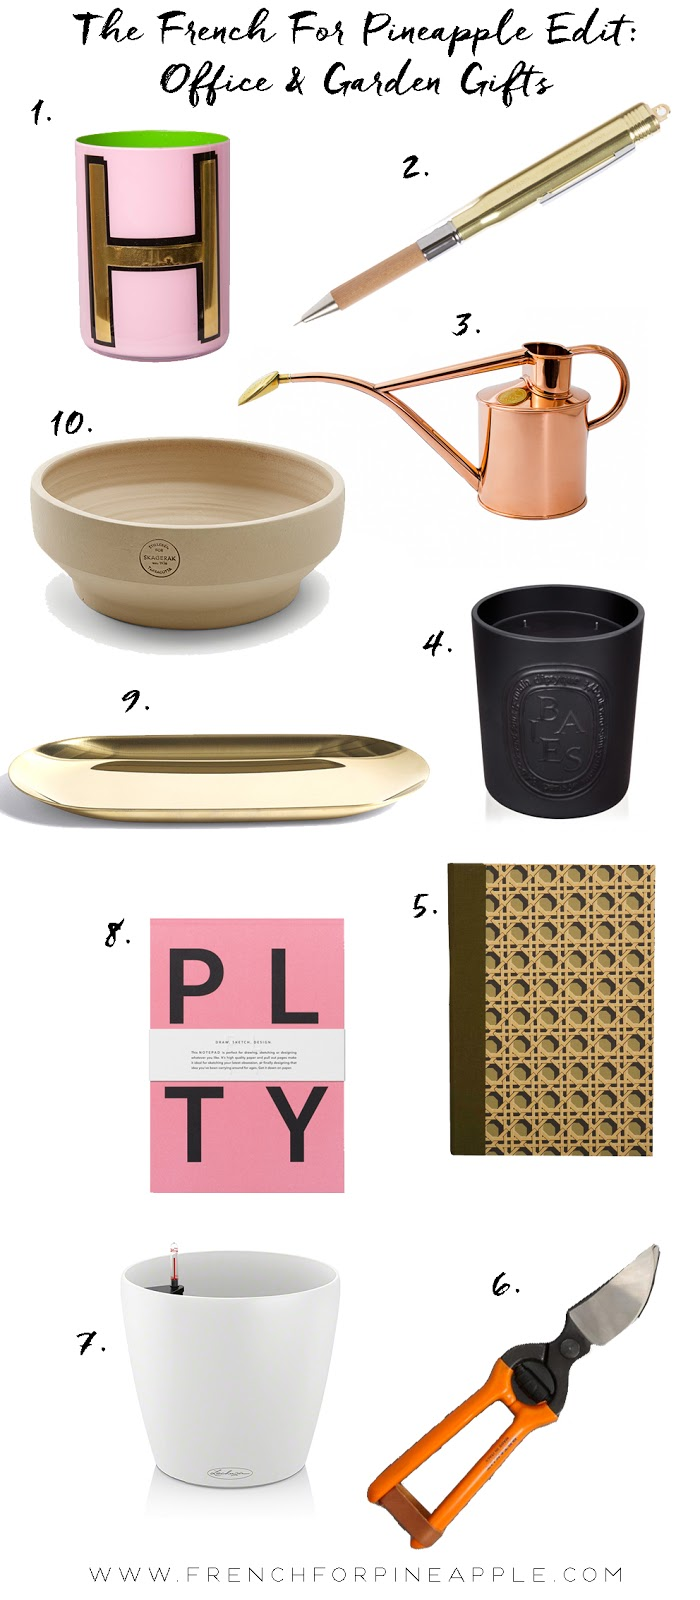 French For Pineapple Blog - Office & Garden Gift Guide